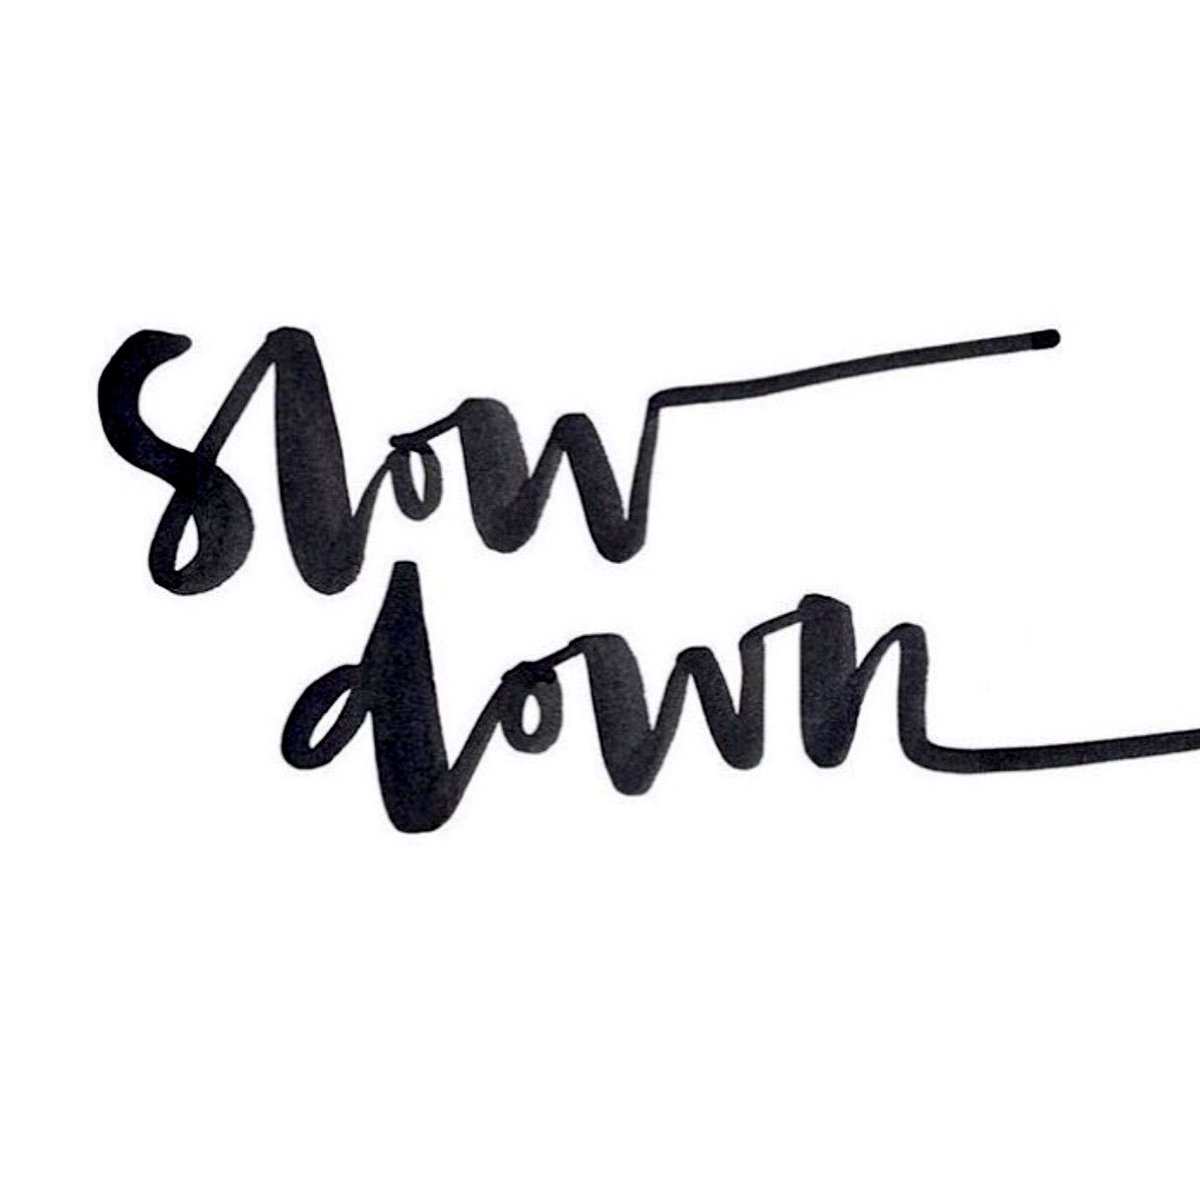 Brilliant things can happen with a calm mind. Remember to take a moment to slow down today. #happyfriday https://t.co/hfA76Qq61r